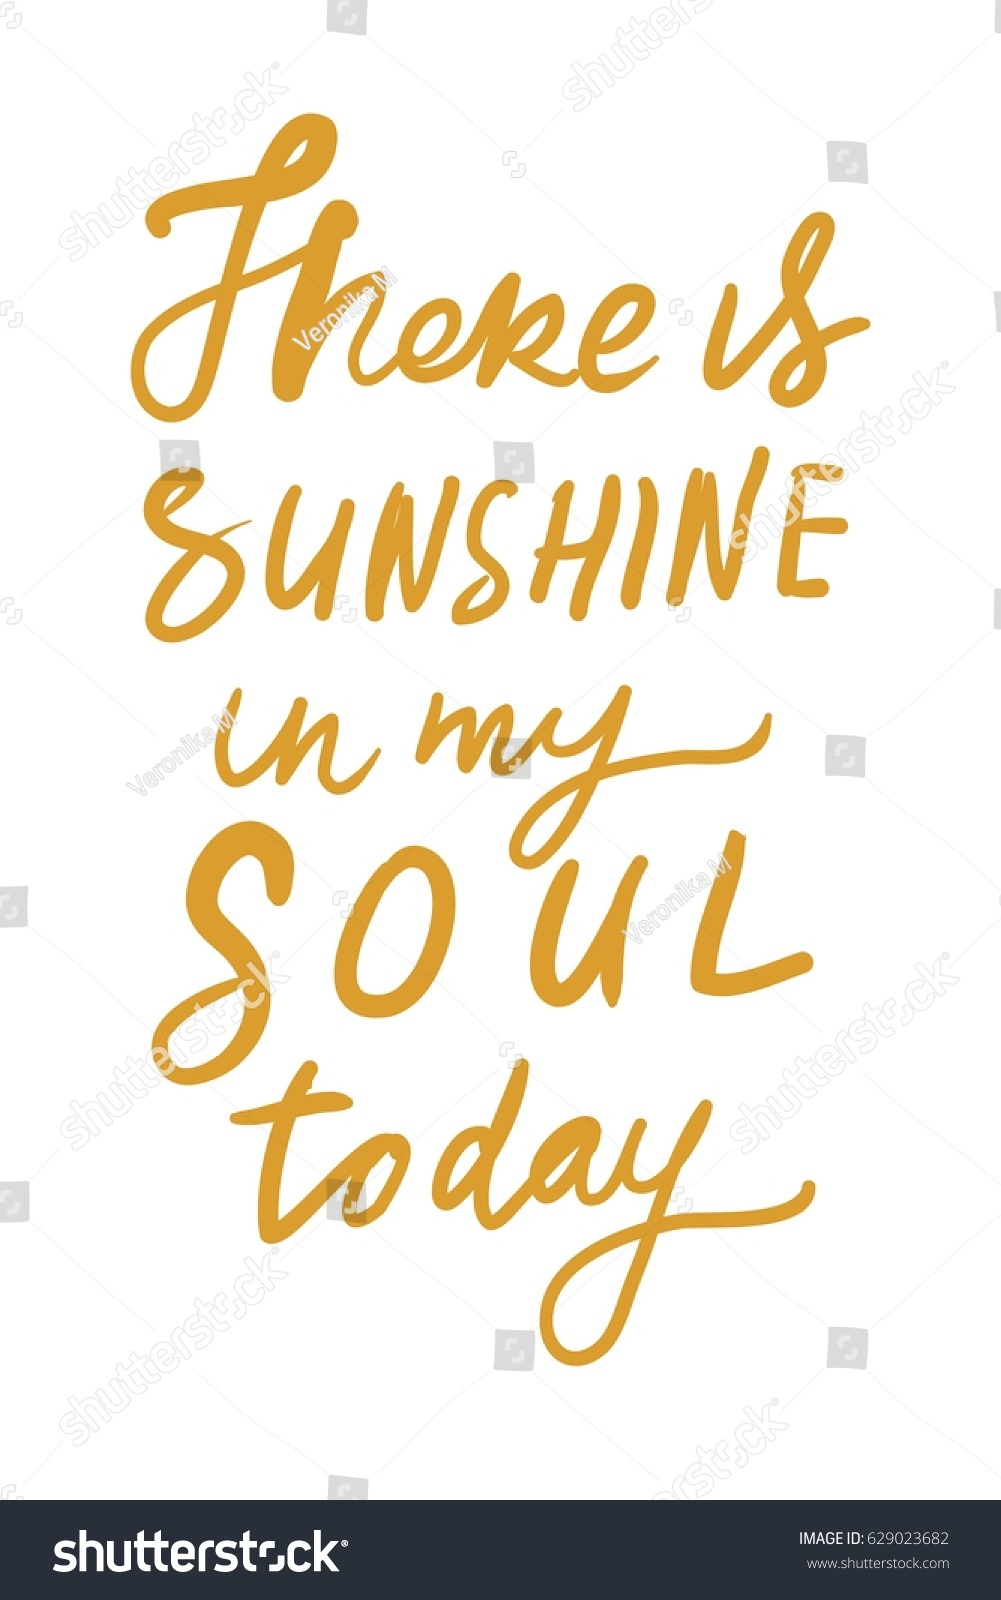 Quote For Today About Happiness There Sunshine My Soul Todayquotes About Stock Vector 629023682